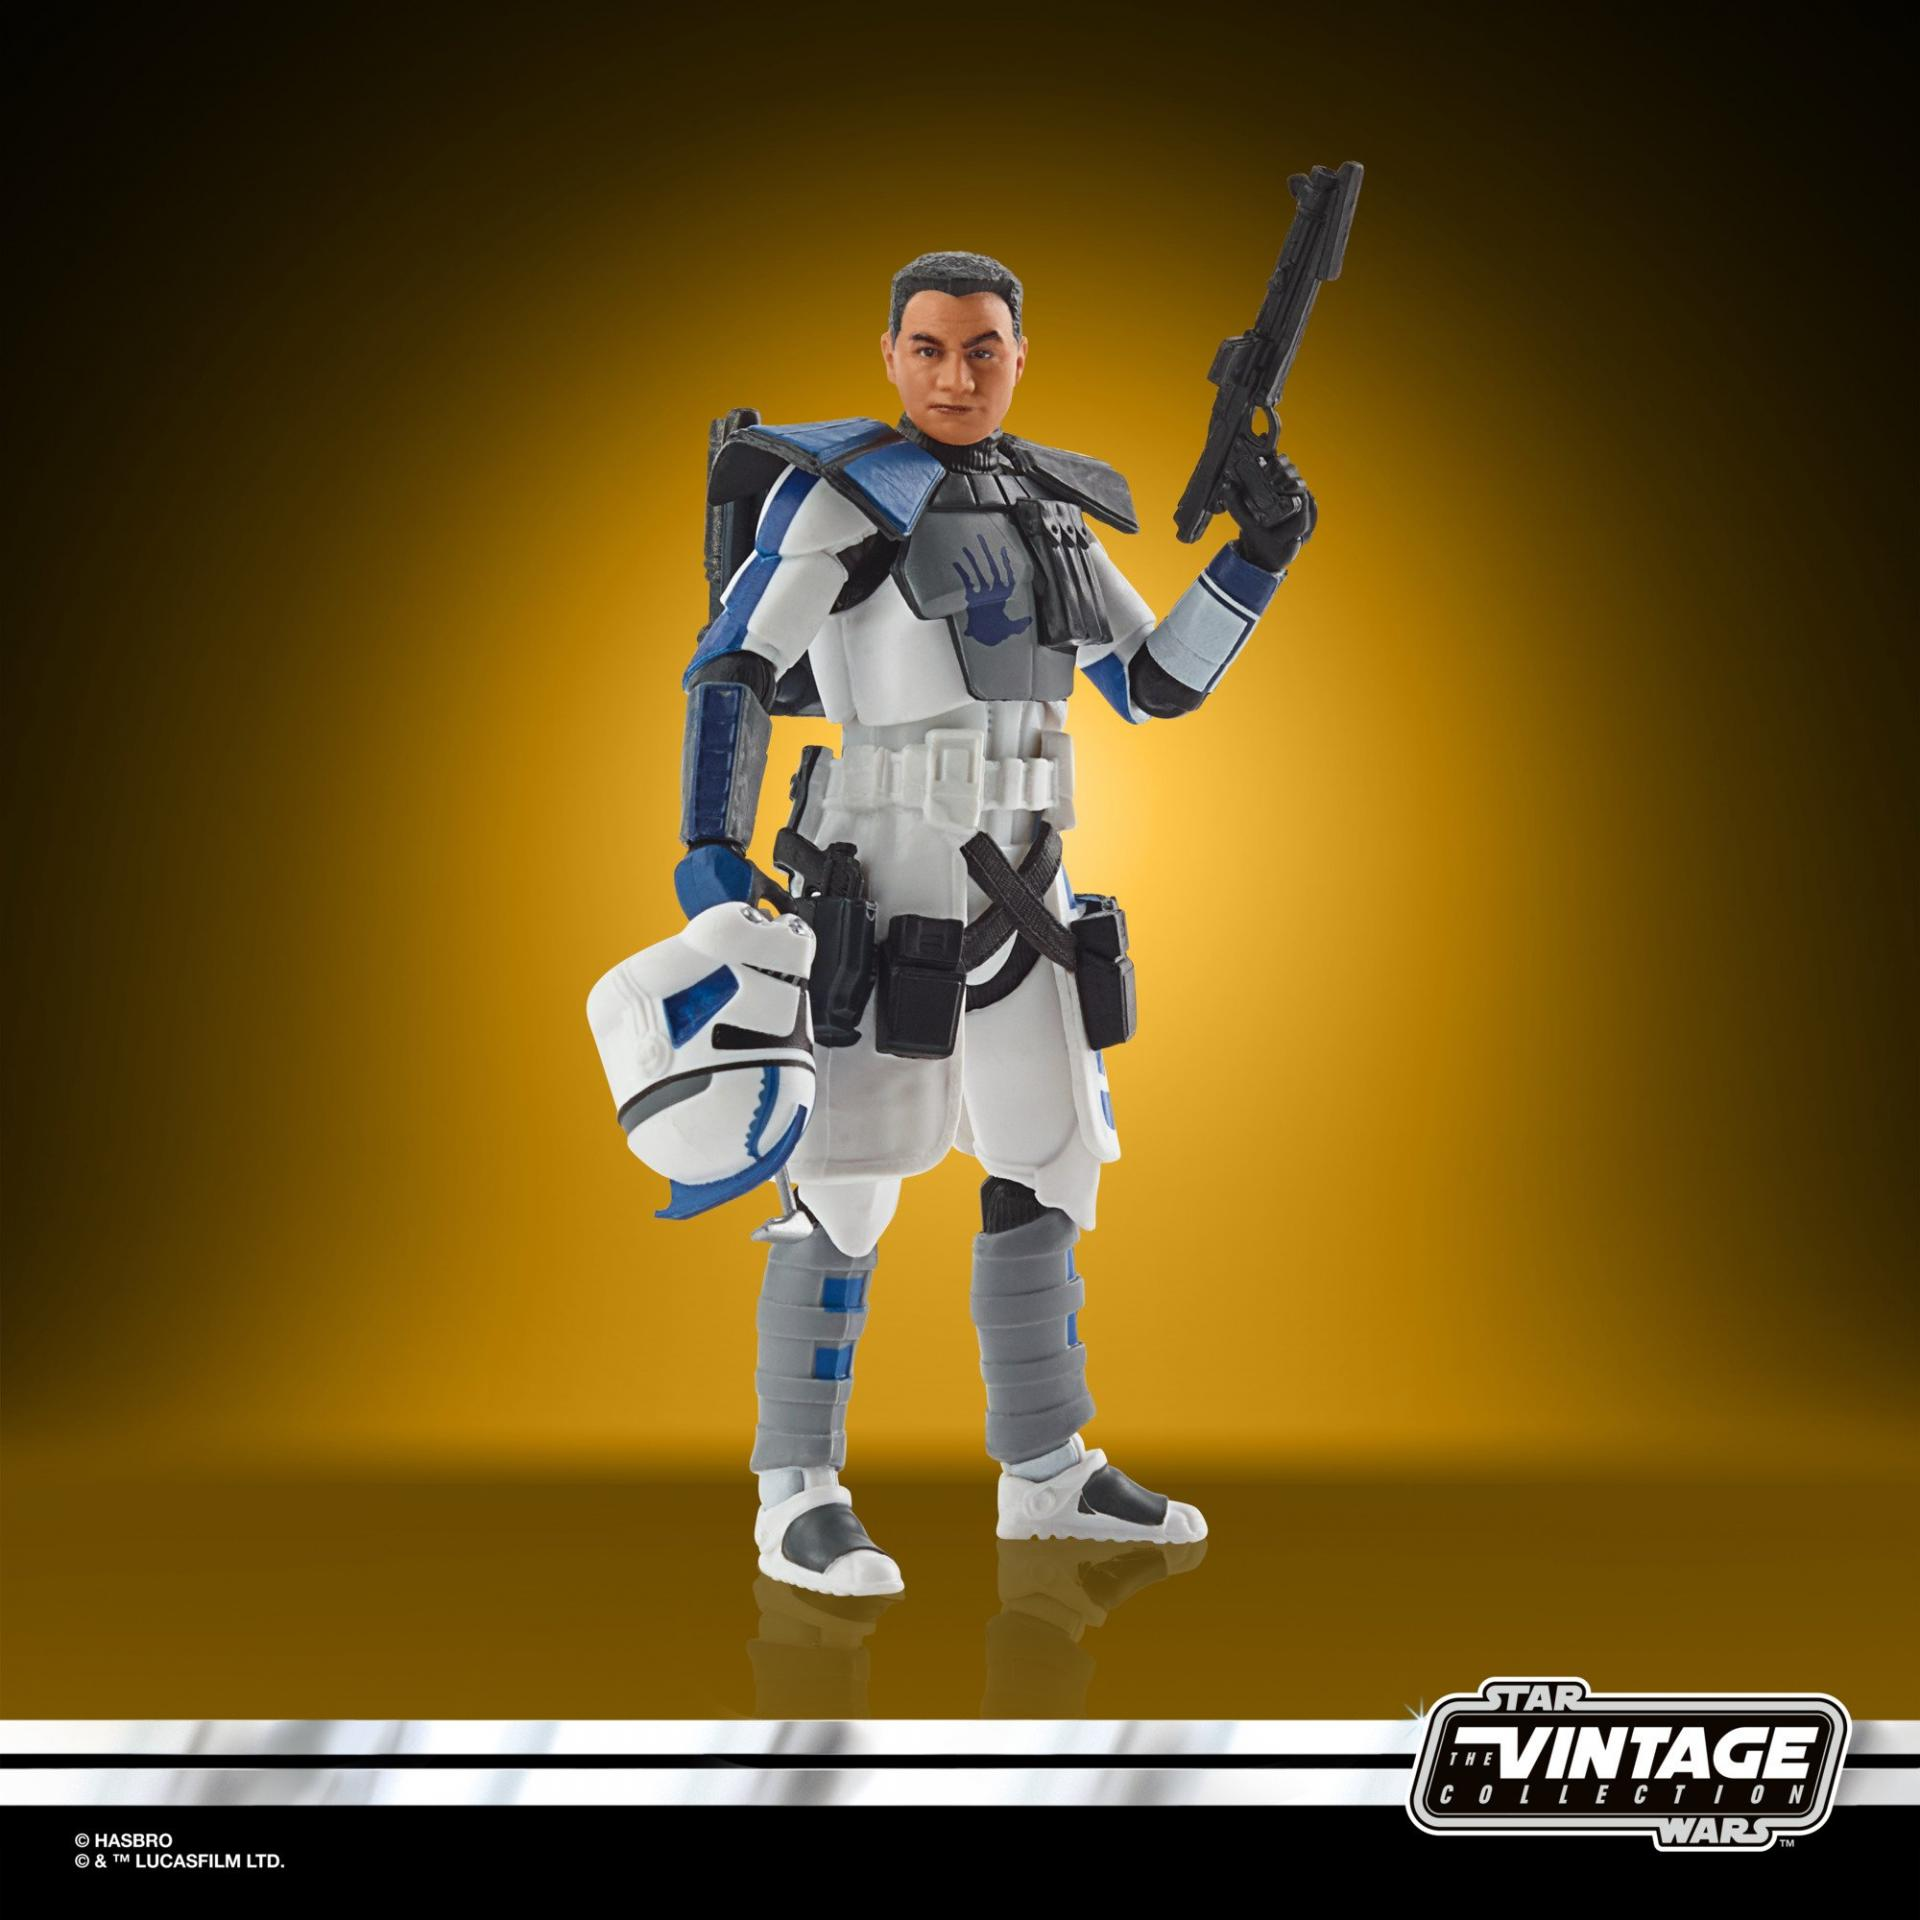 Star wars the vintage collection arc trooper echo2